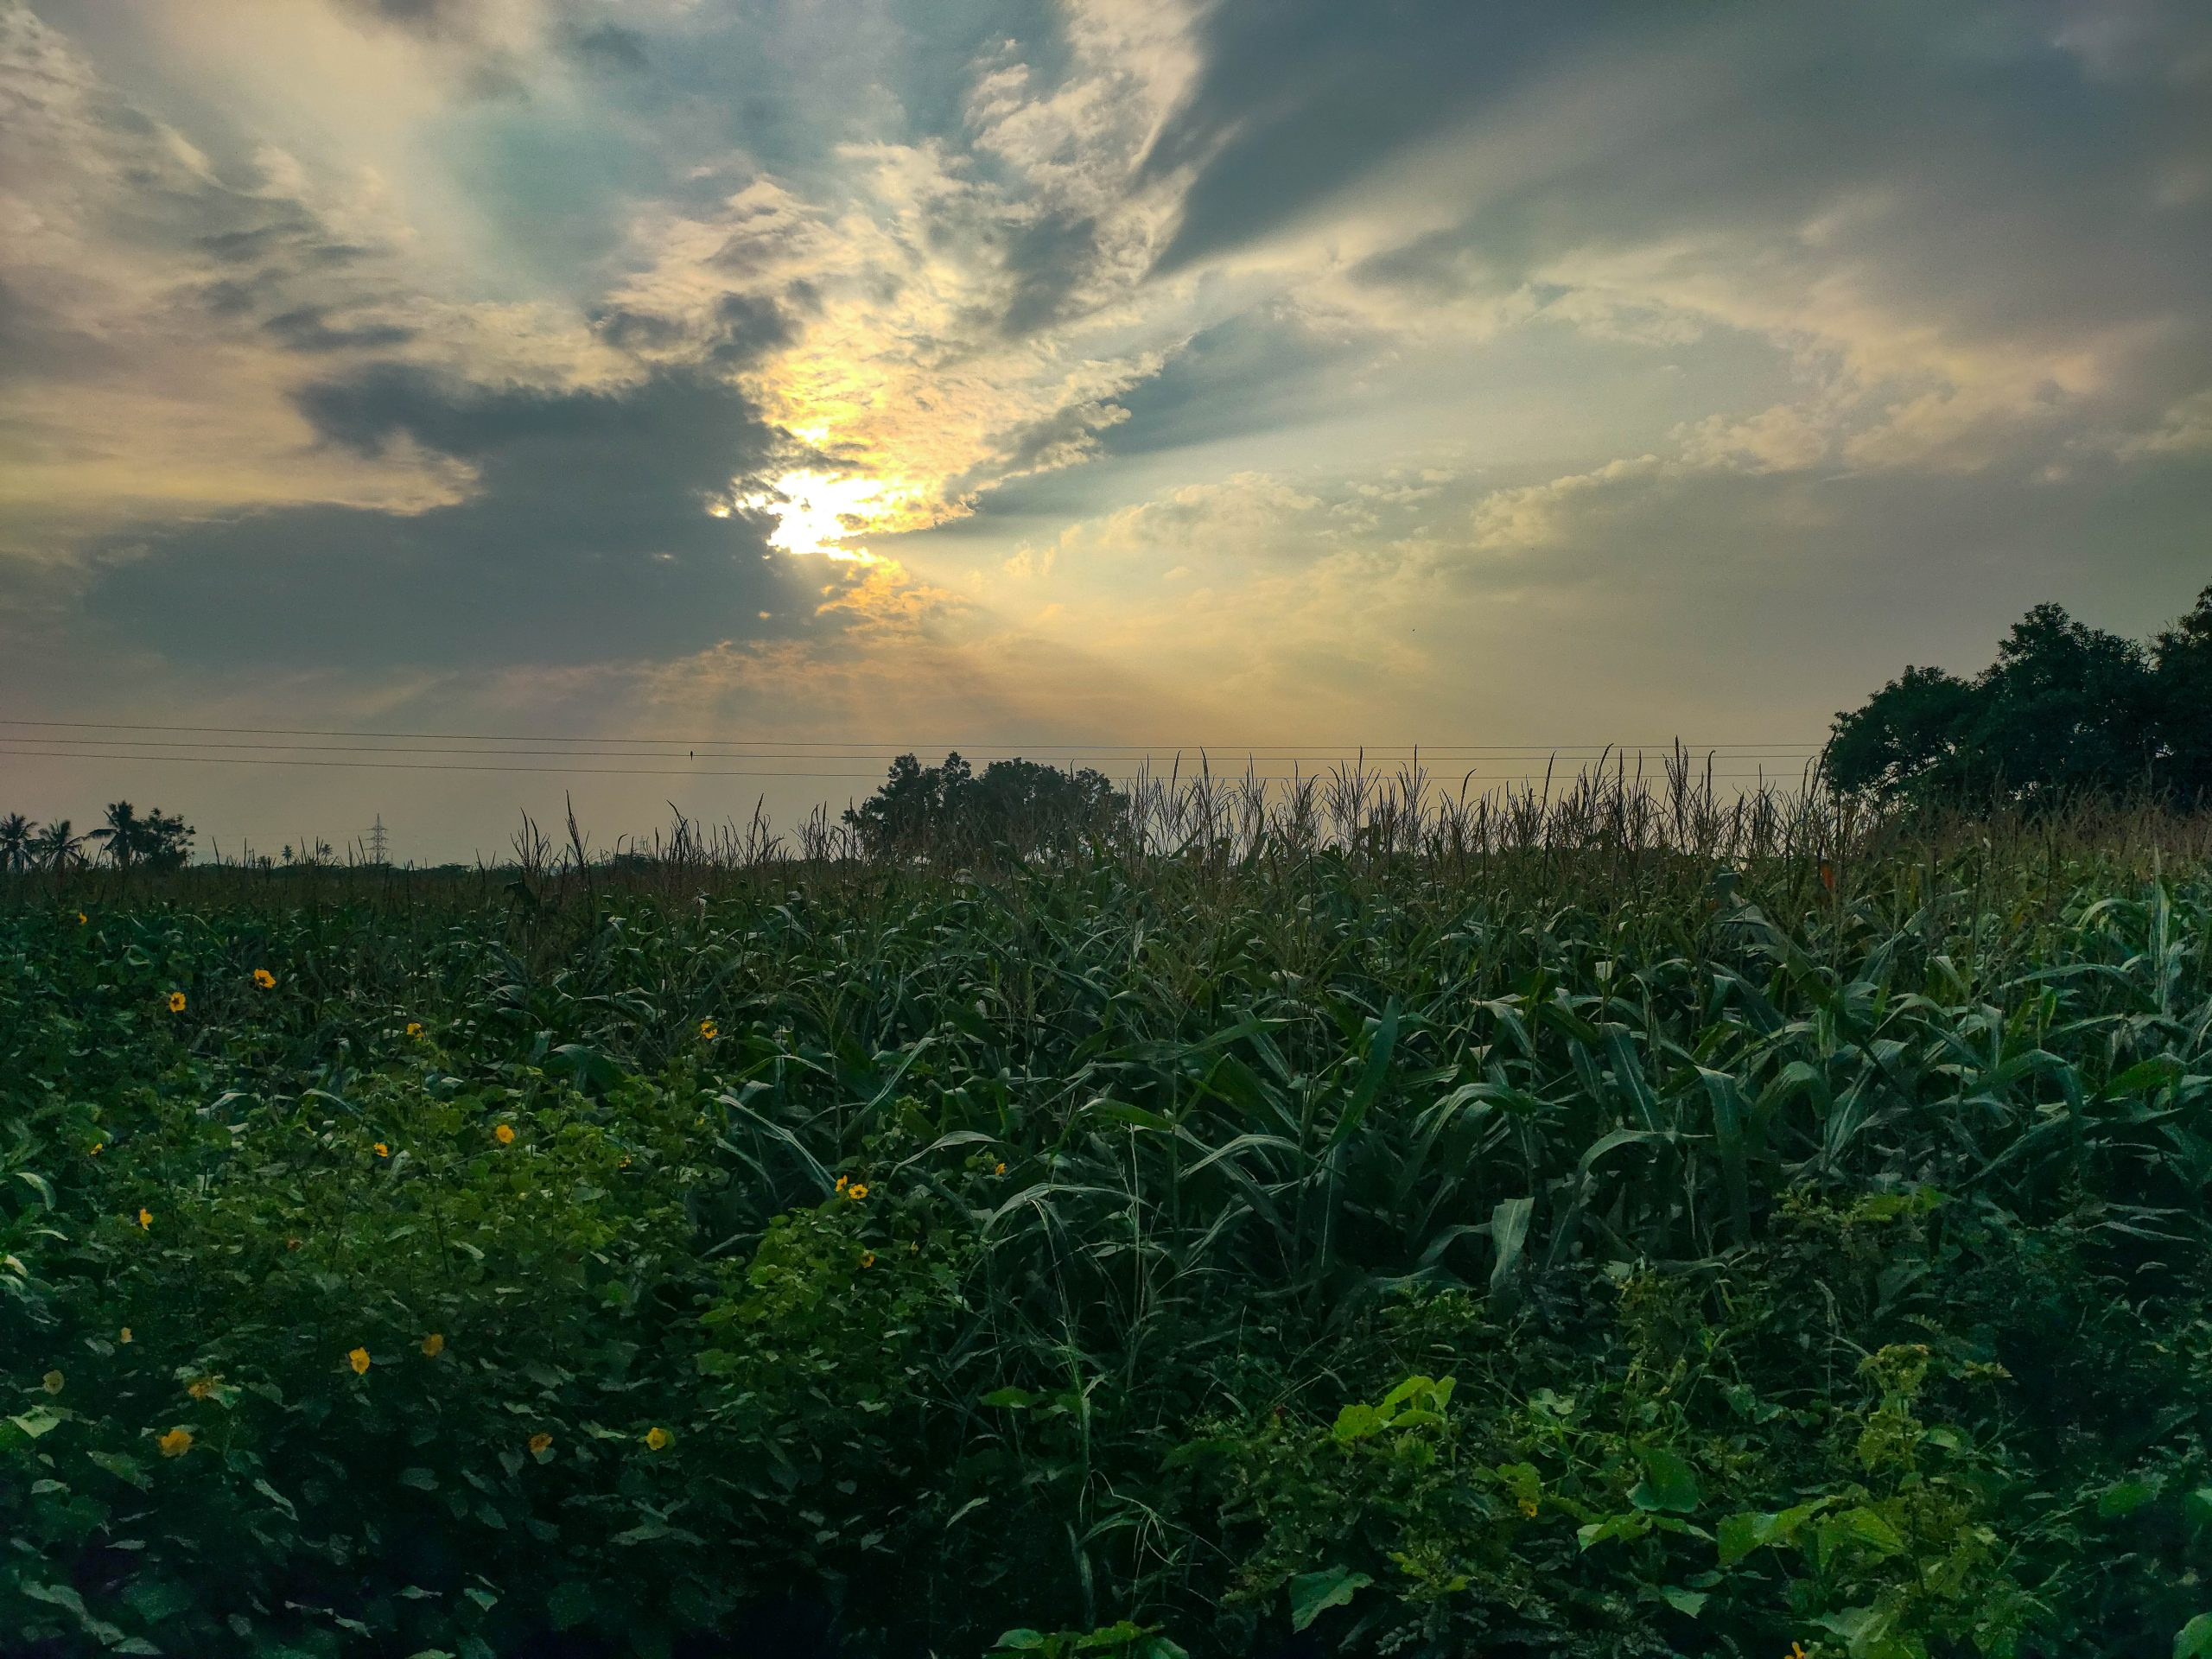 corn field and sunset